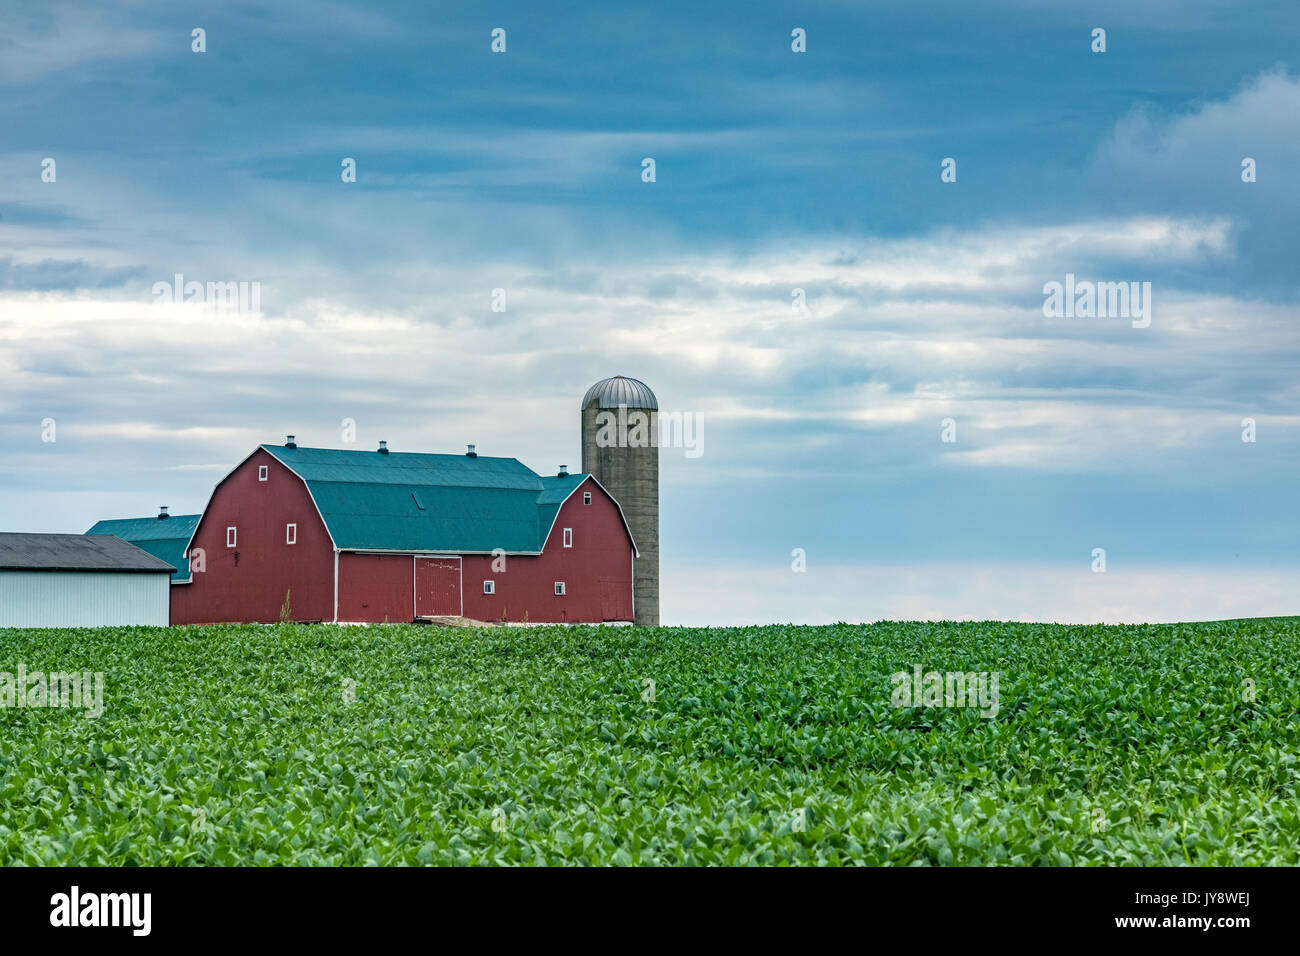 A Northamerican barn with a silo in summer - Stock Image